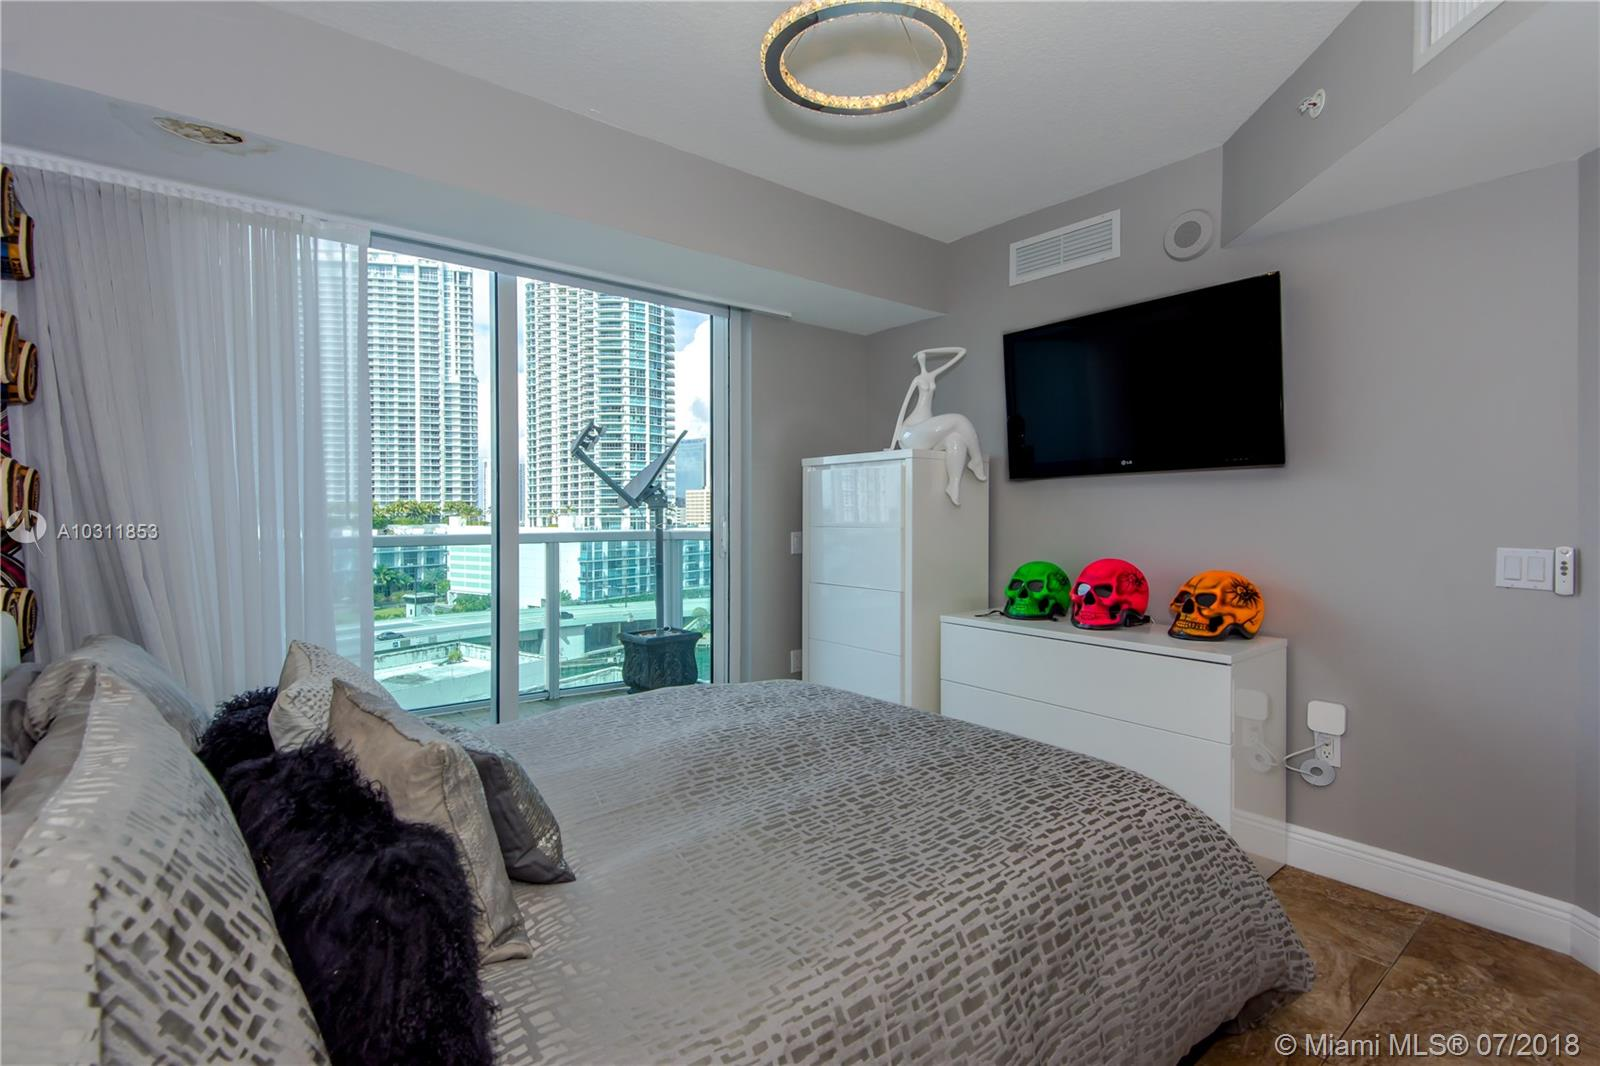 41 SE 5th Street, Miami, FL 33131-2504, Brickell on the River South #717, Brickell, Miami A10311853 image #5